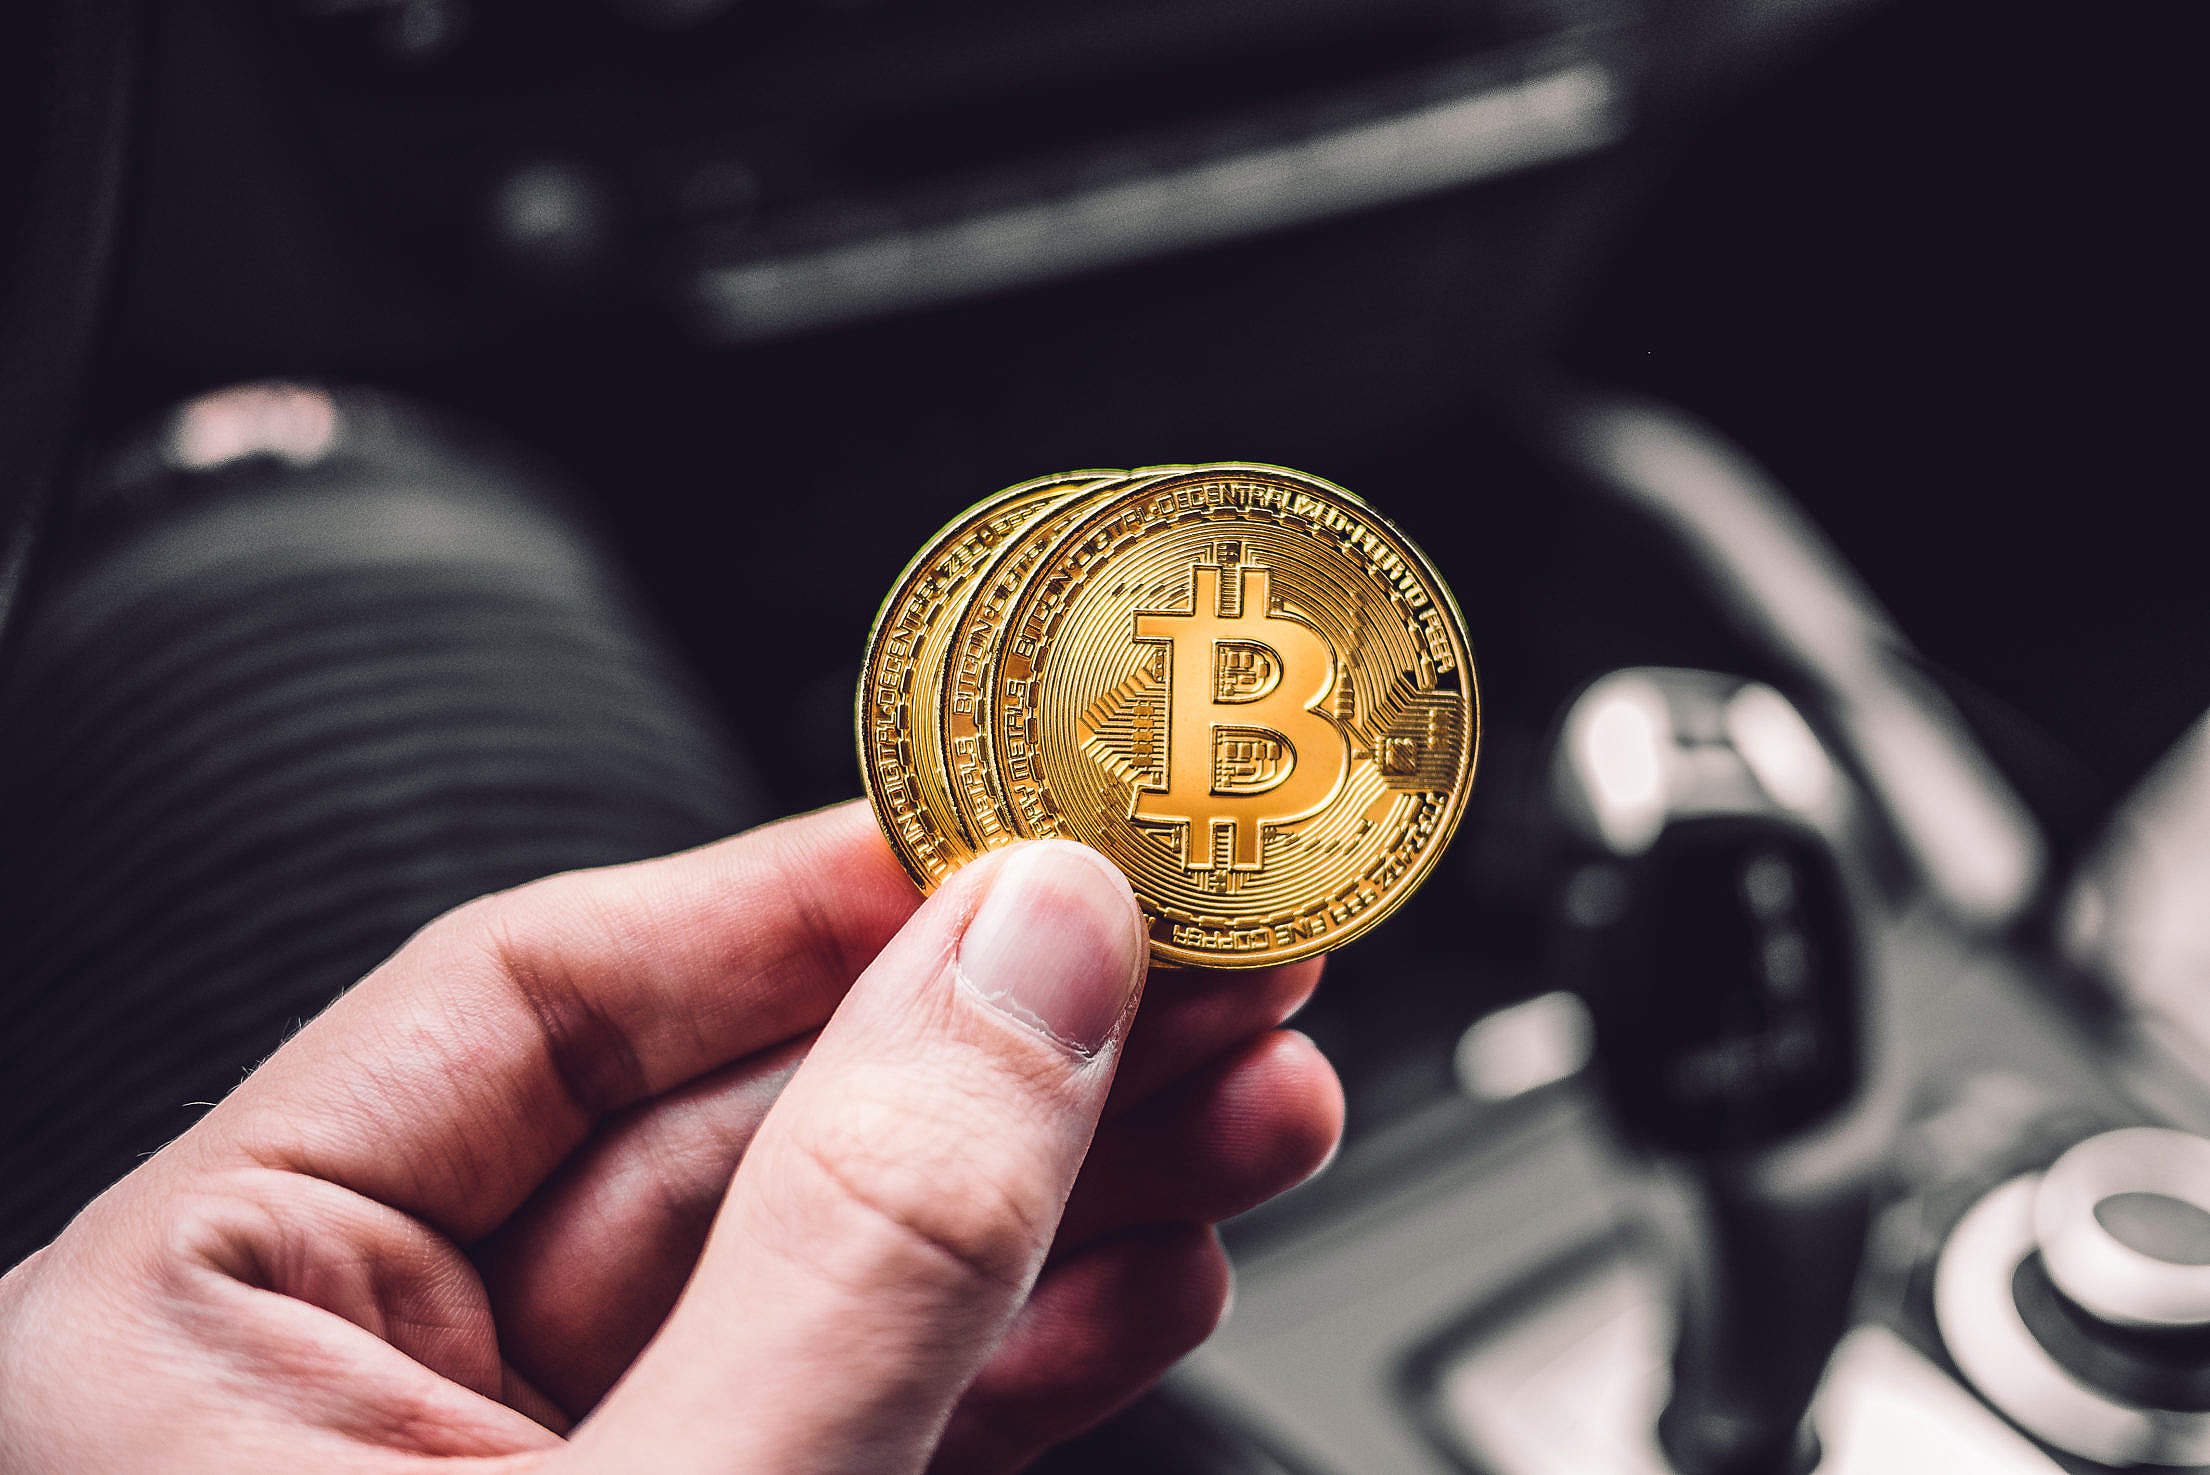 Man Holding a Bitcoin Coin in a Car Free Stock Photo